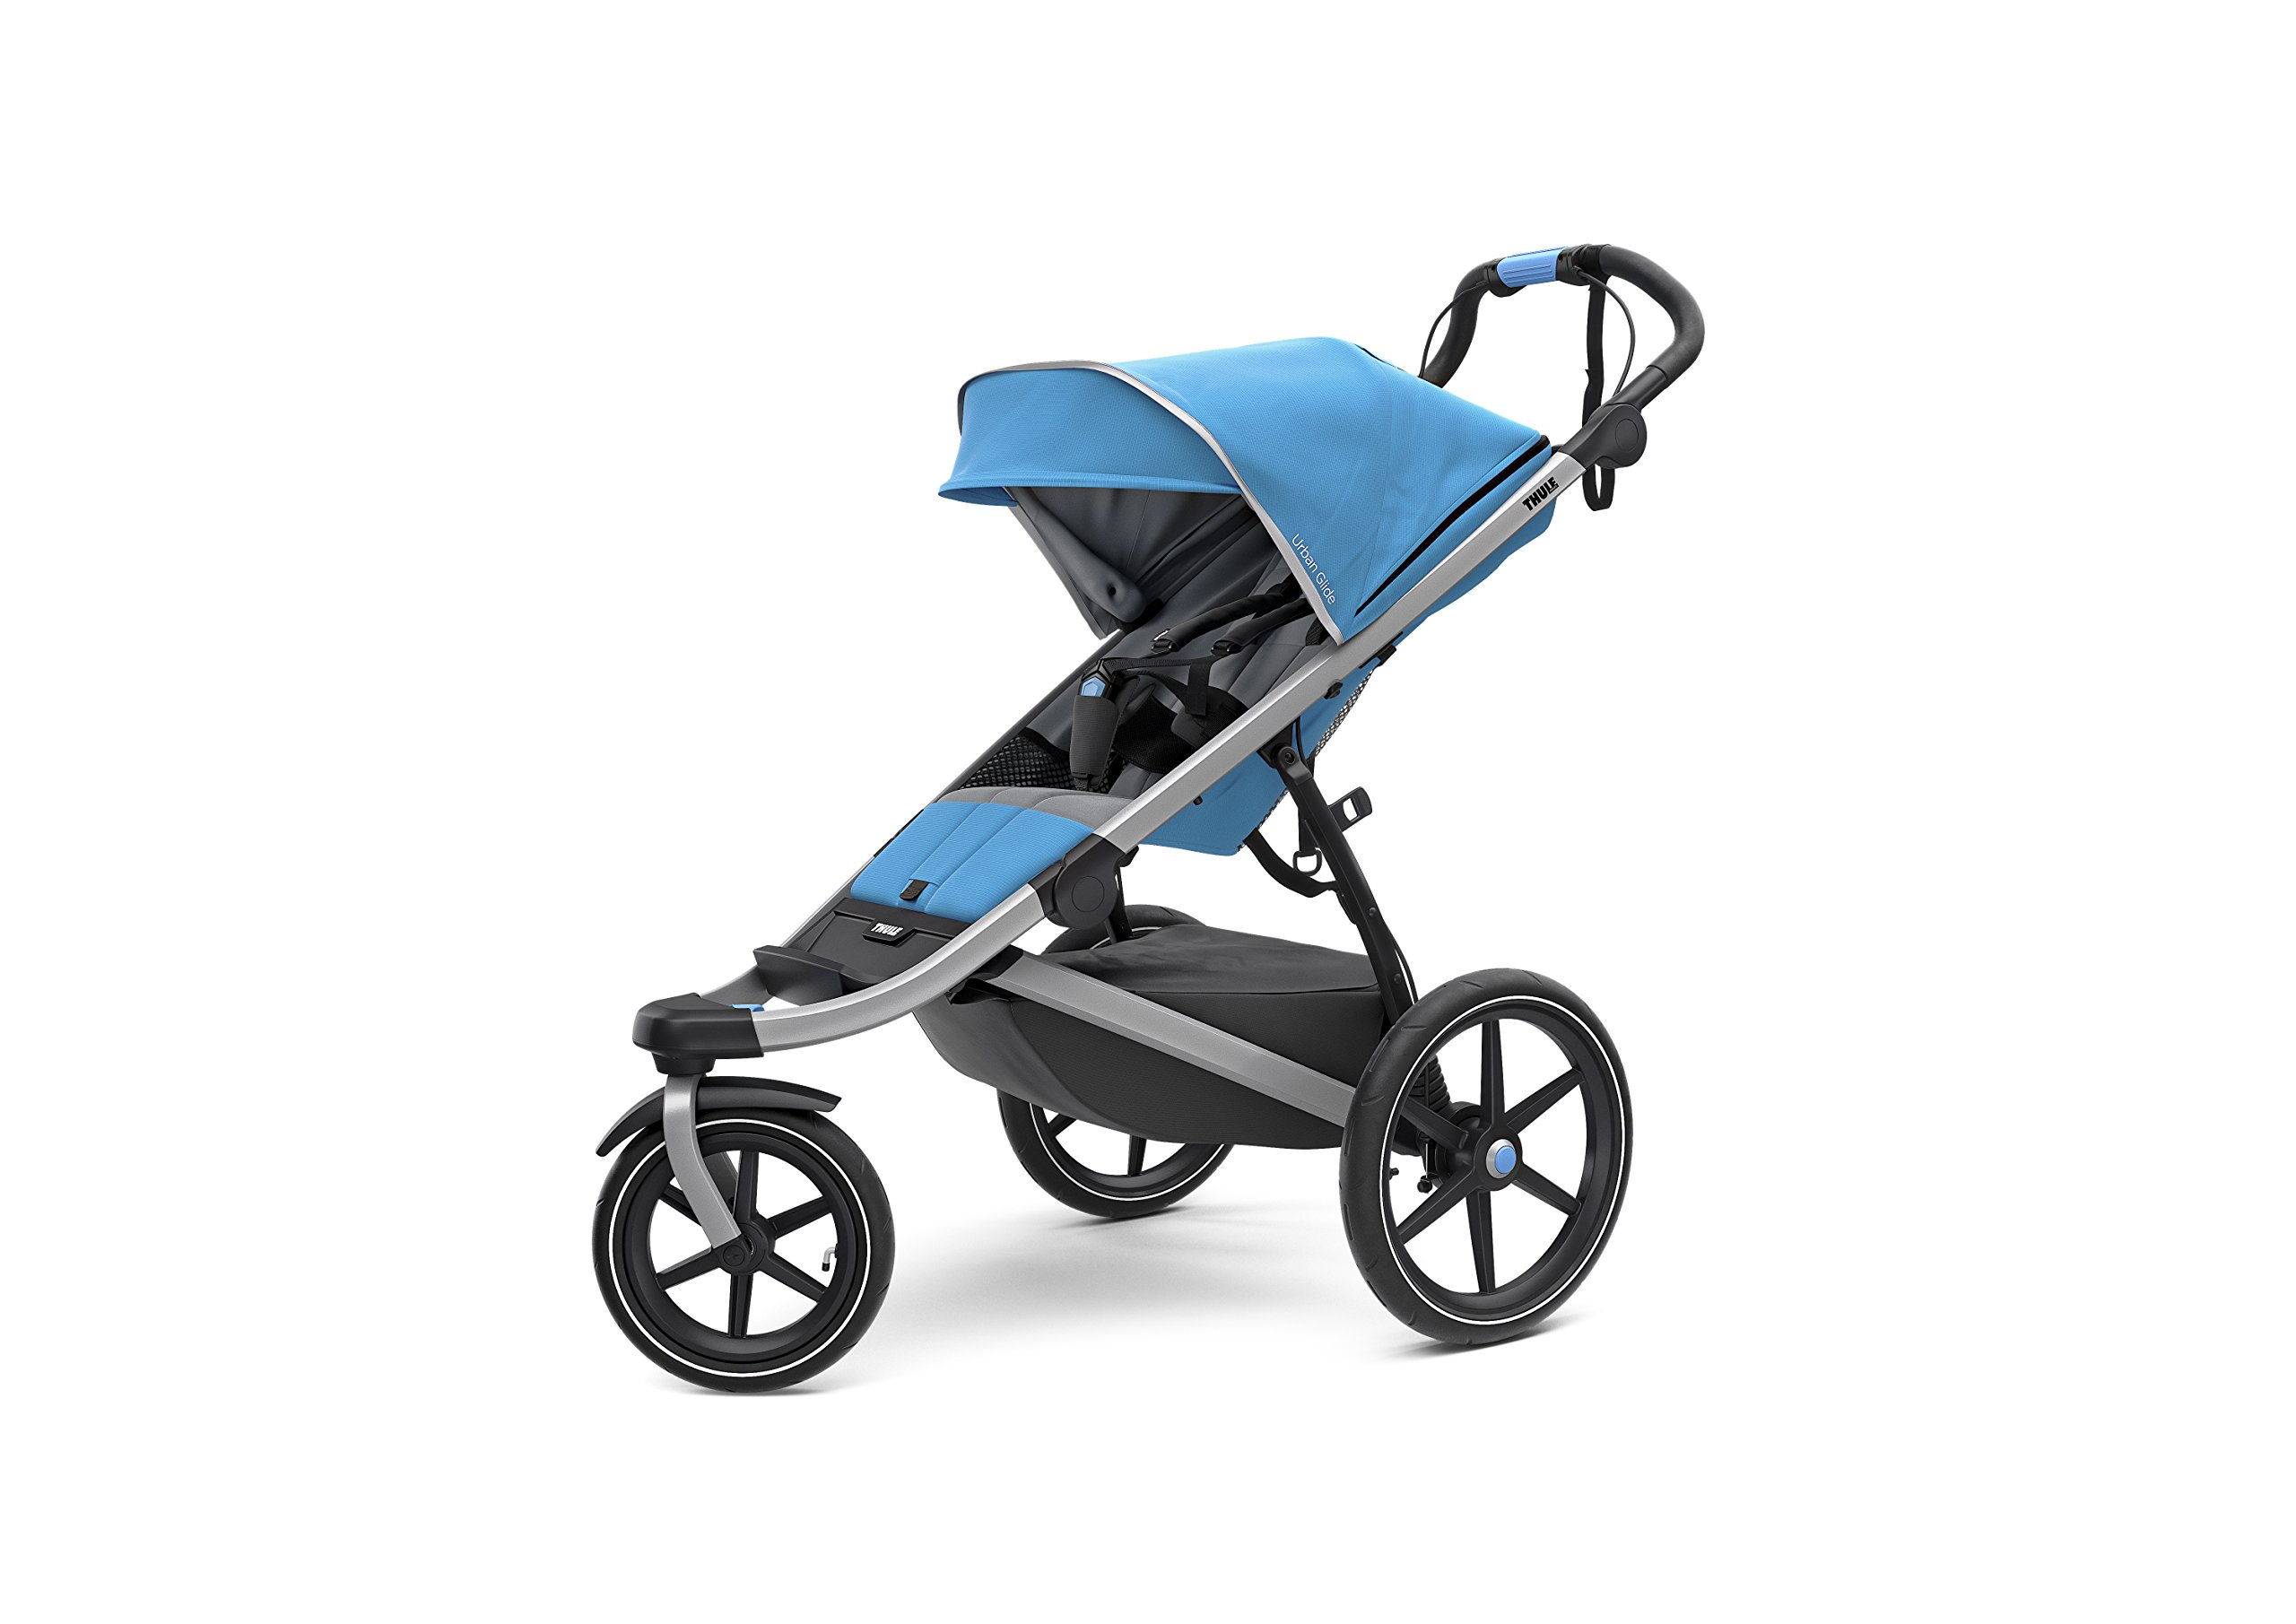 Thule Urban Glide 2.0 Jogging Stroller (Thule Blue w/Silver Frame) Thule One-handed, compact fold for easy storage and transportation Integrated twist hand brake provides speed control on hilly terrain Multi-position canopy with side-ventilation windows ensures your child is comfortable 1